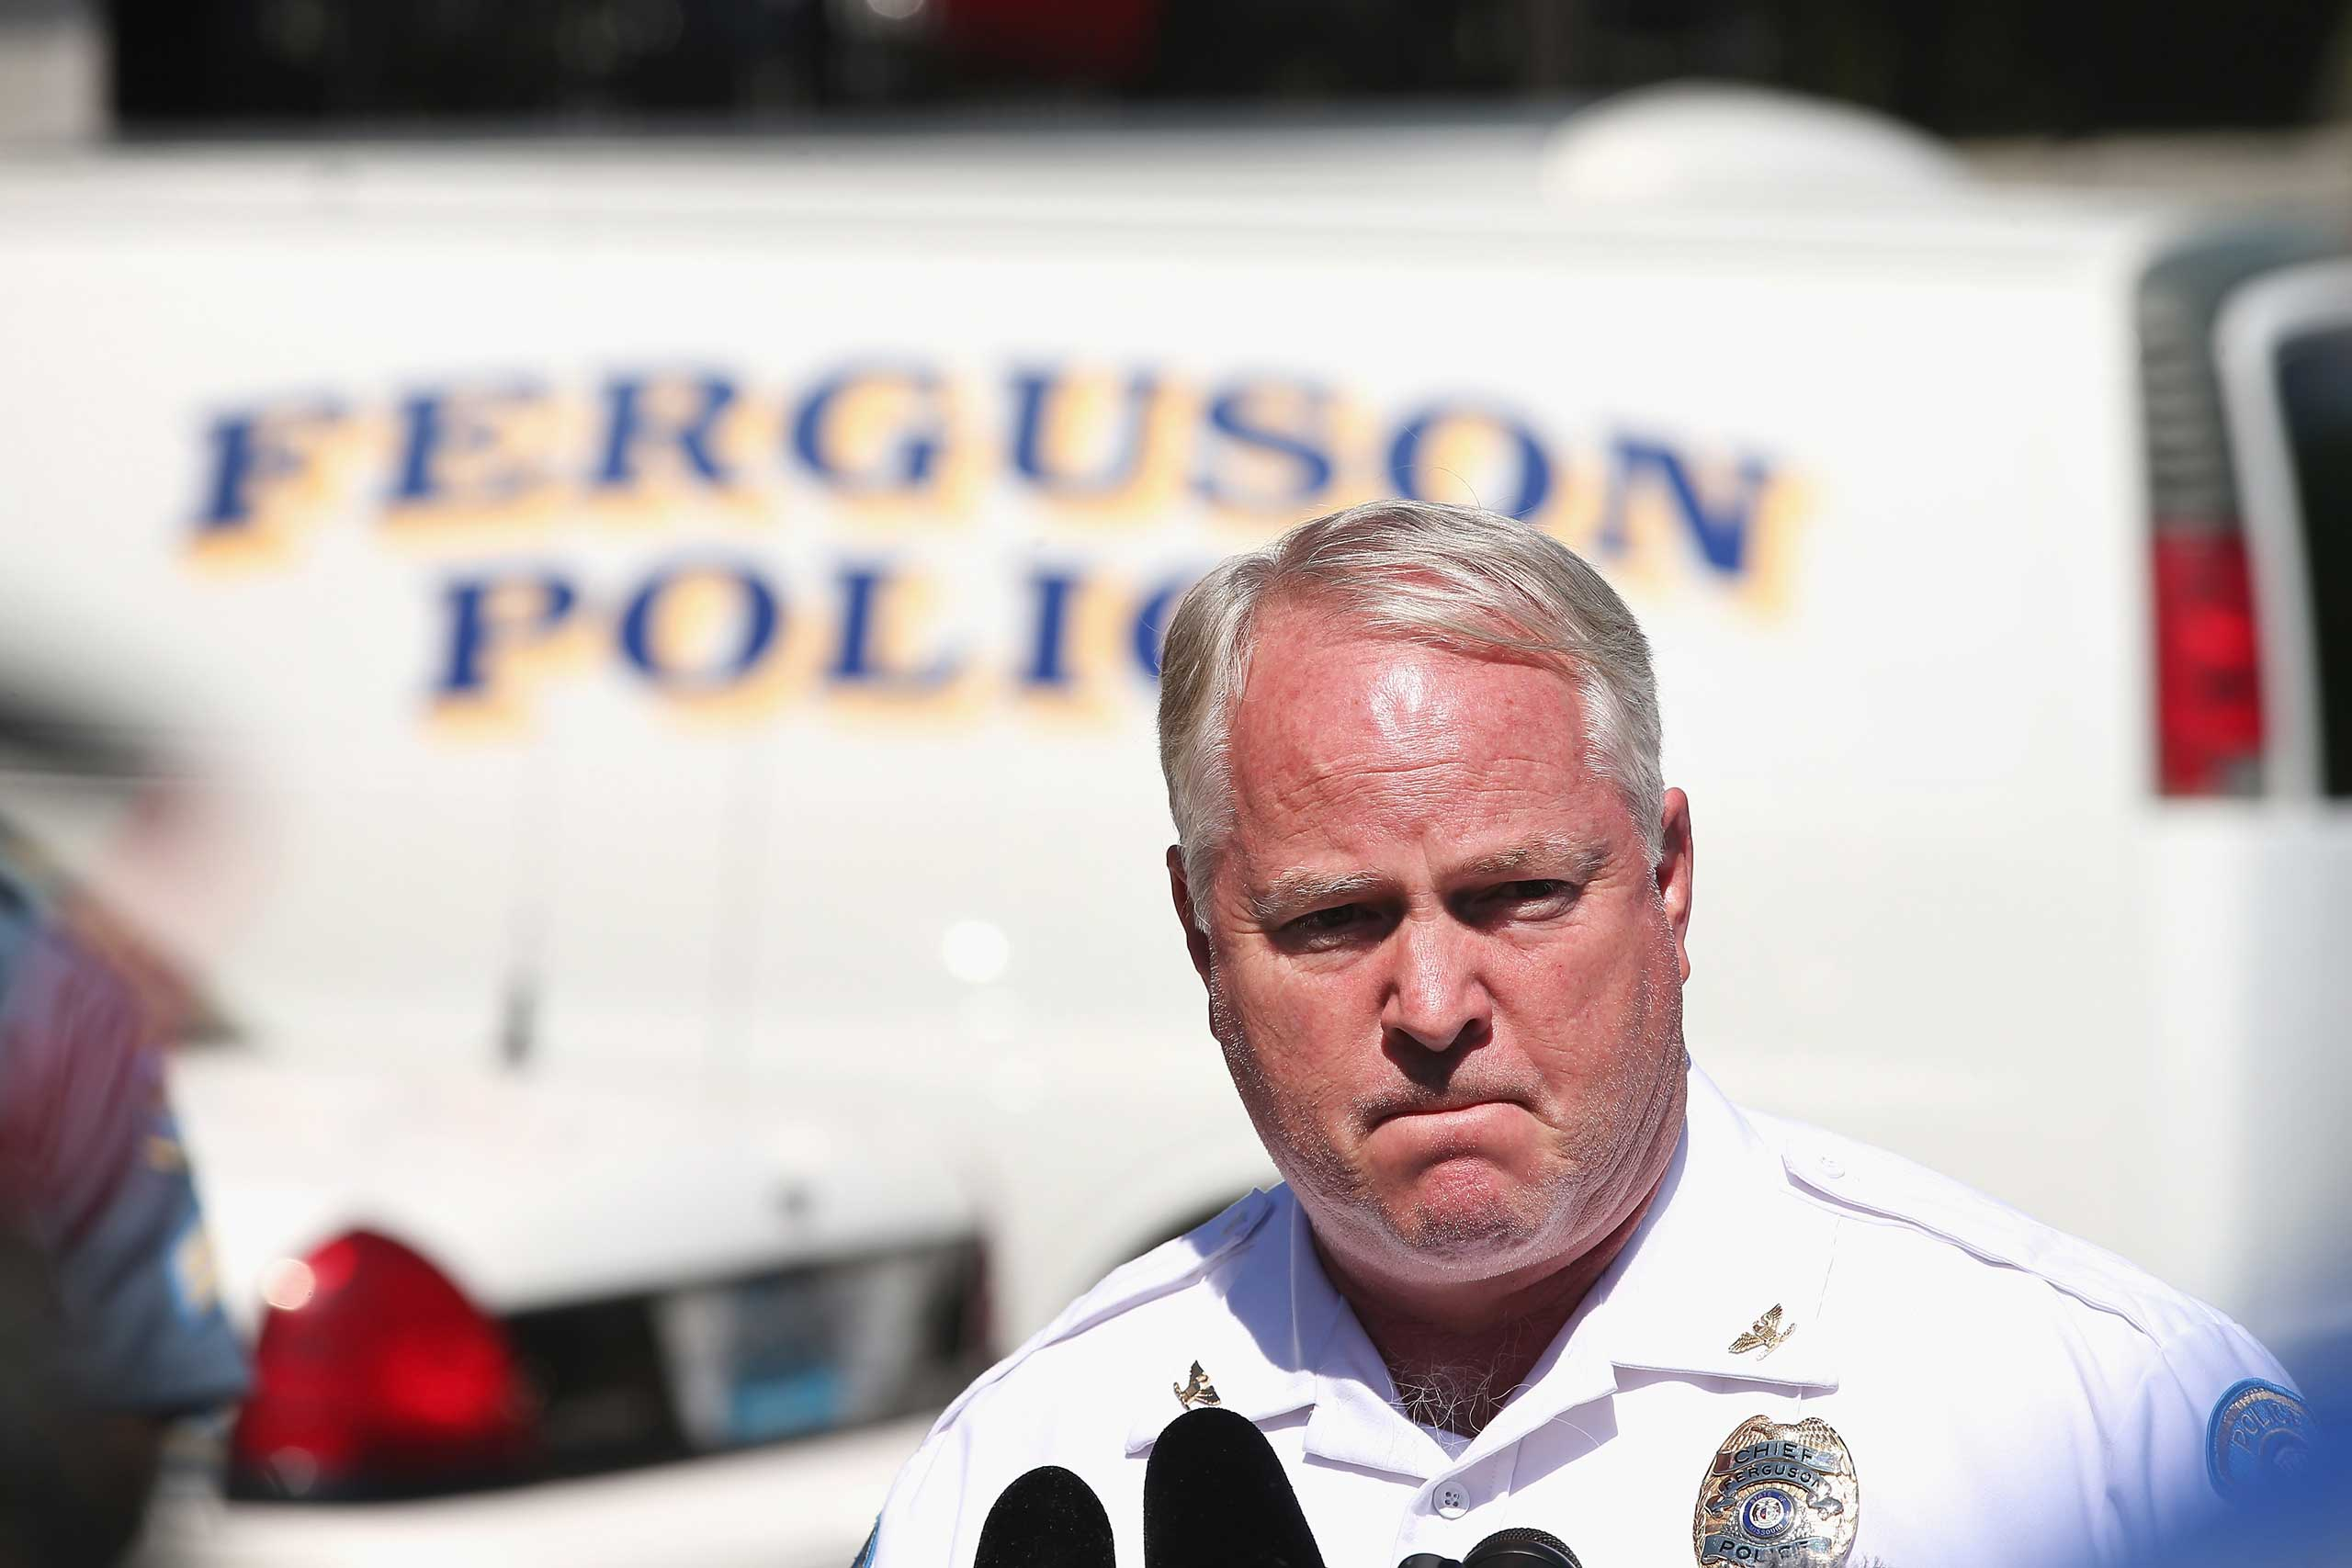 Ferguson Police Chief Tom Jackson stepped down March 11, 2015, after a federal report harshly criticized the police department, becoming the sixth Ferguson official to resign since the investigation.